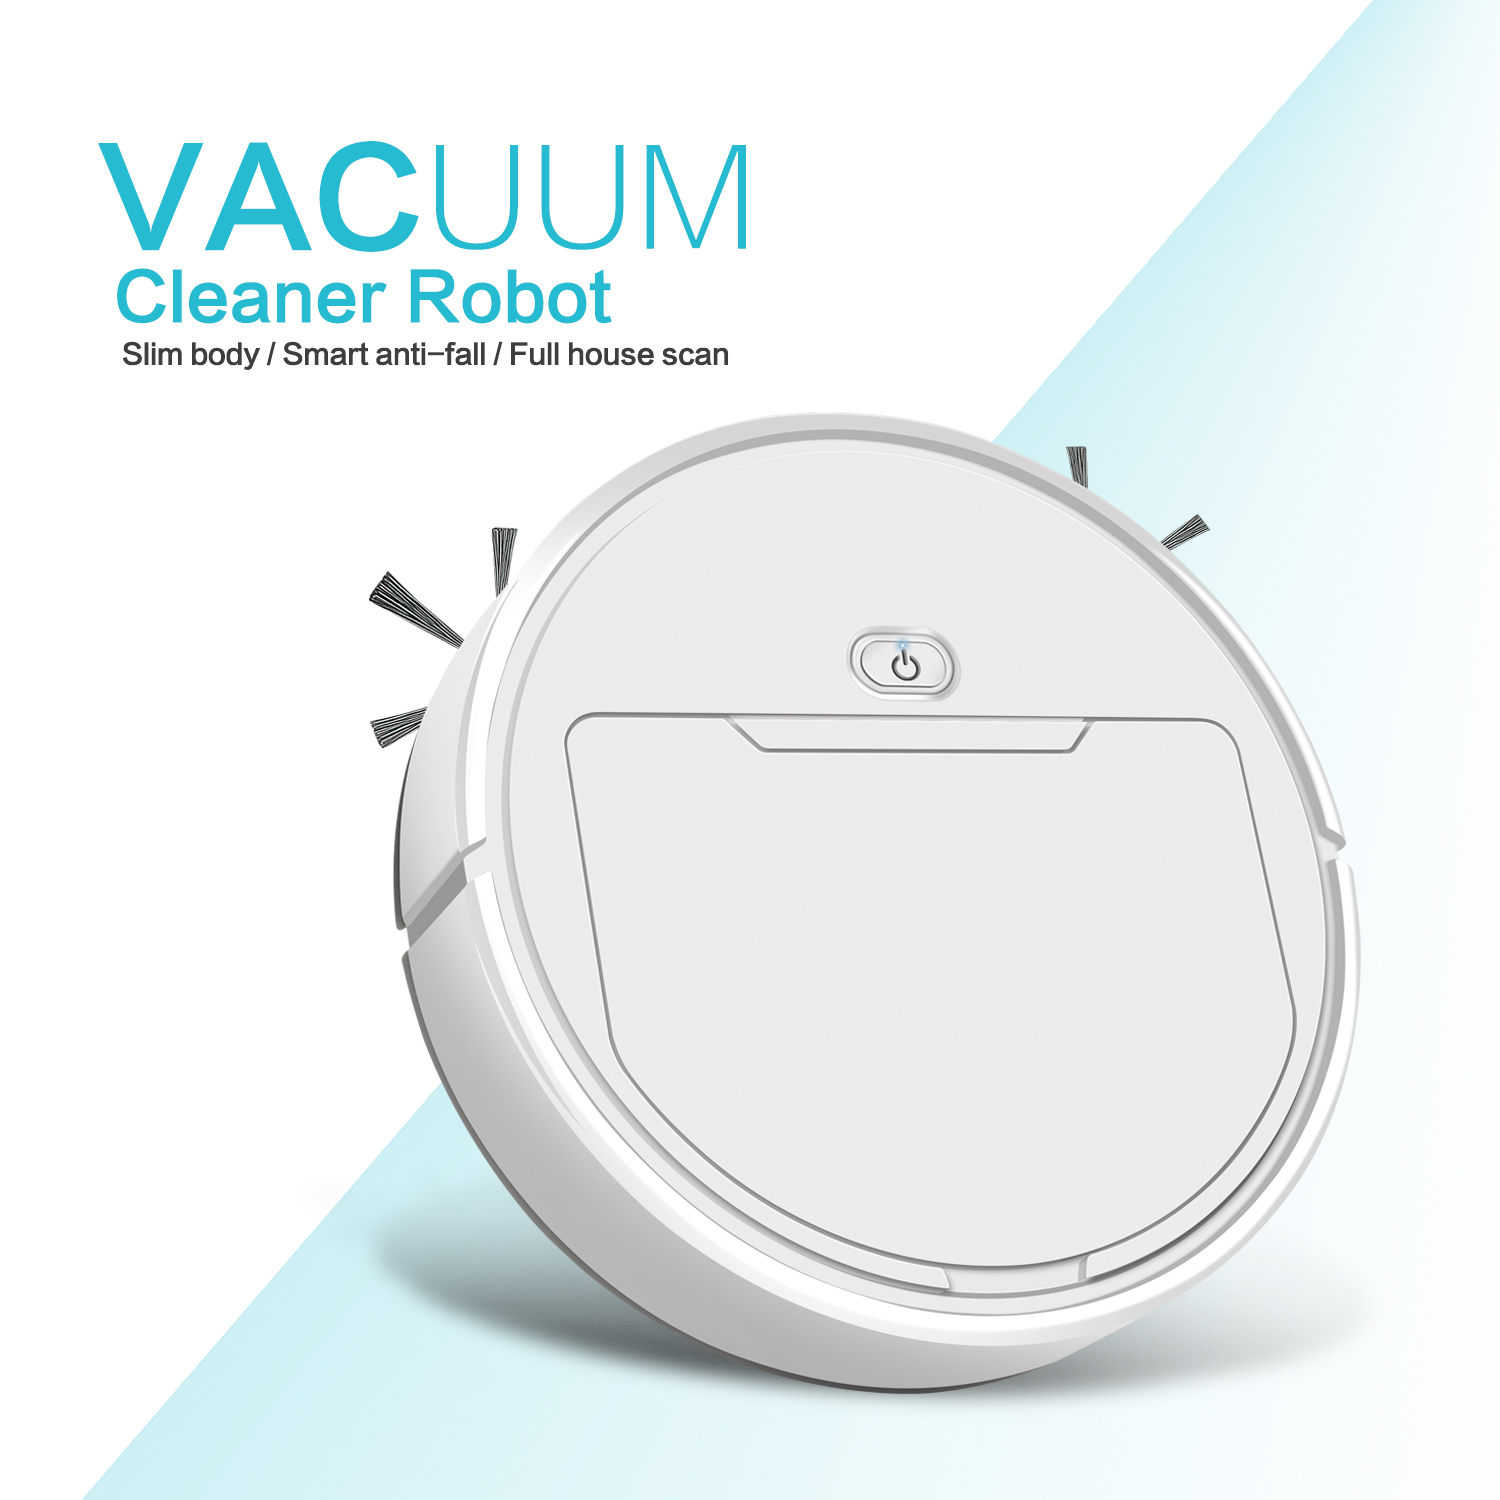 2020 New Household Intelligent Floor Vacuum Cleaner Robot Automatic Sweeping Robots Cleaning Machine Cleaner Robot Vacuum